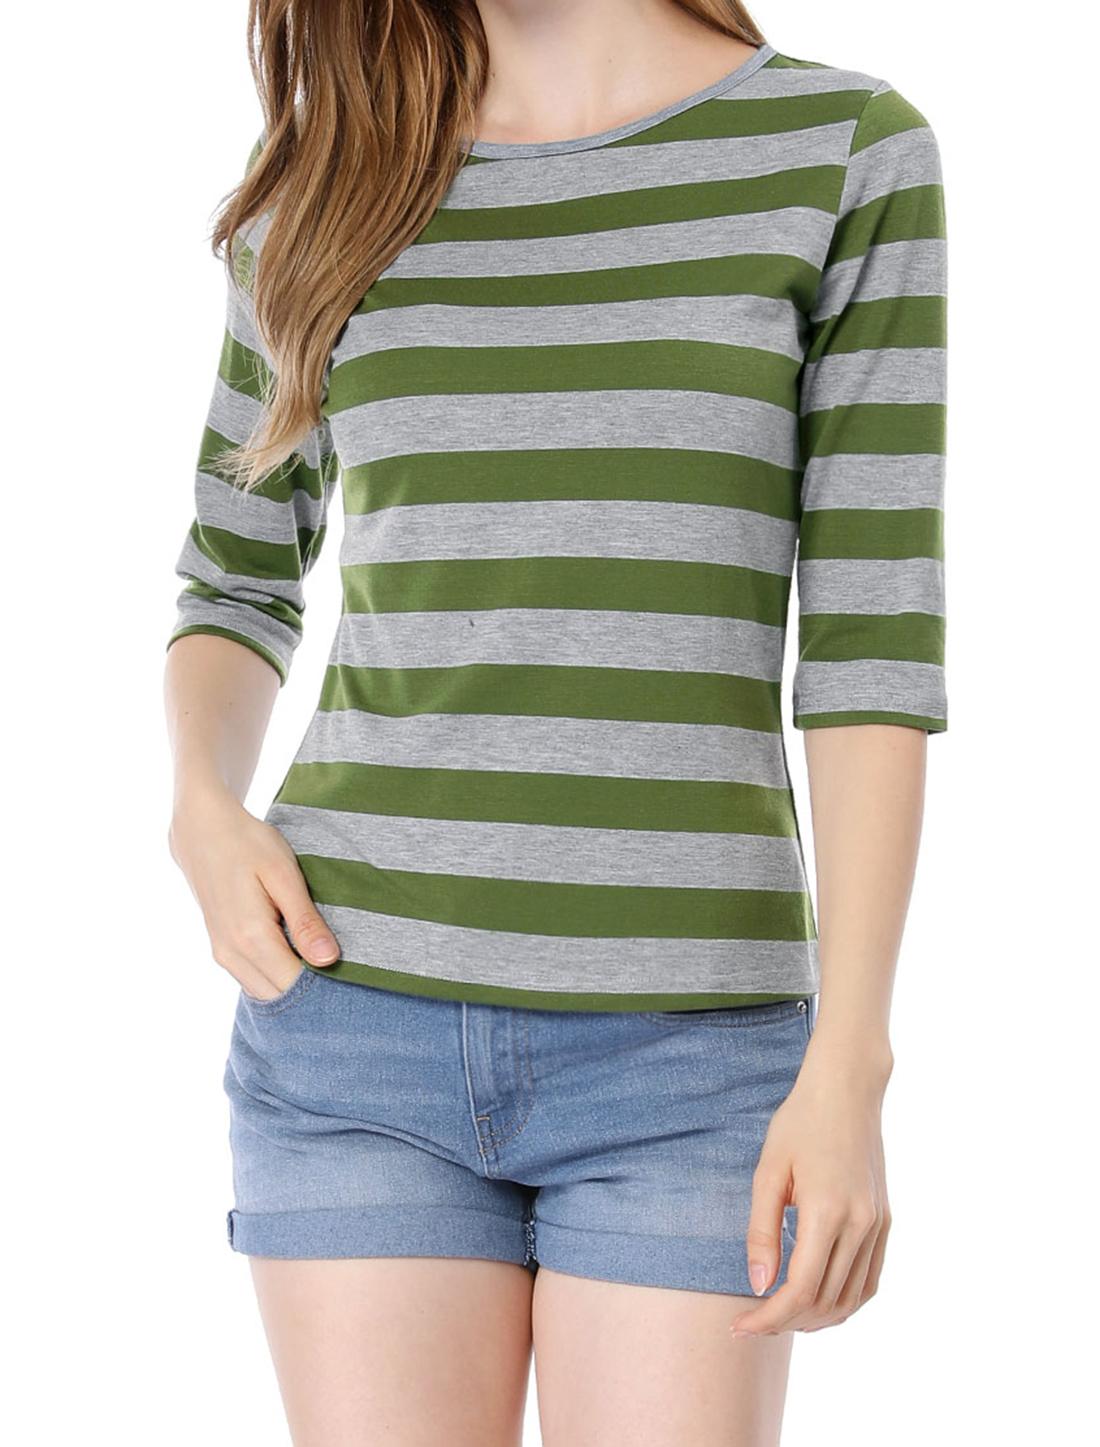 Allegra K Women 1/2 Sleeves Contrast Color Stripes T-shirt Green Gray XS